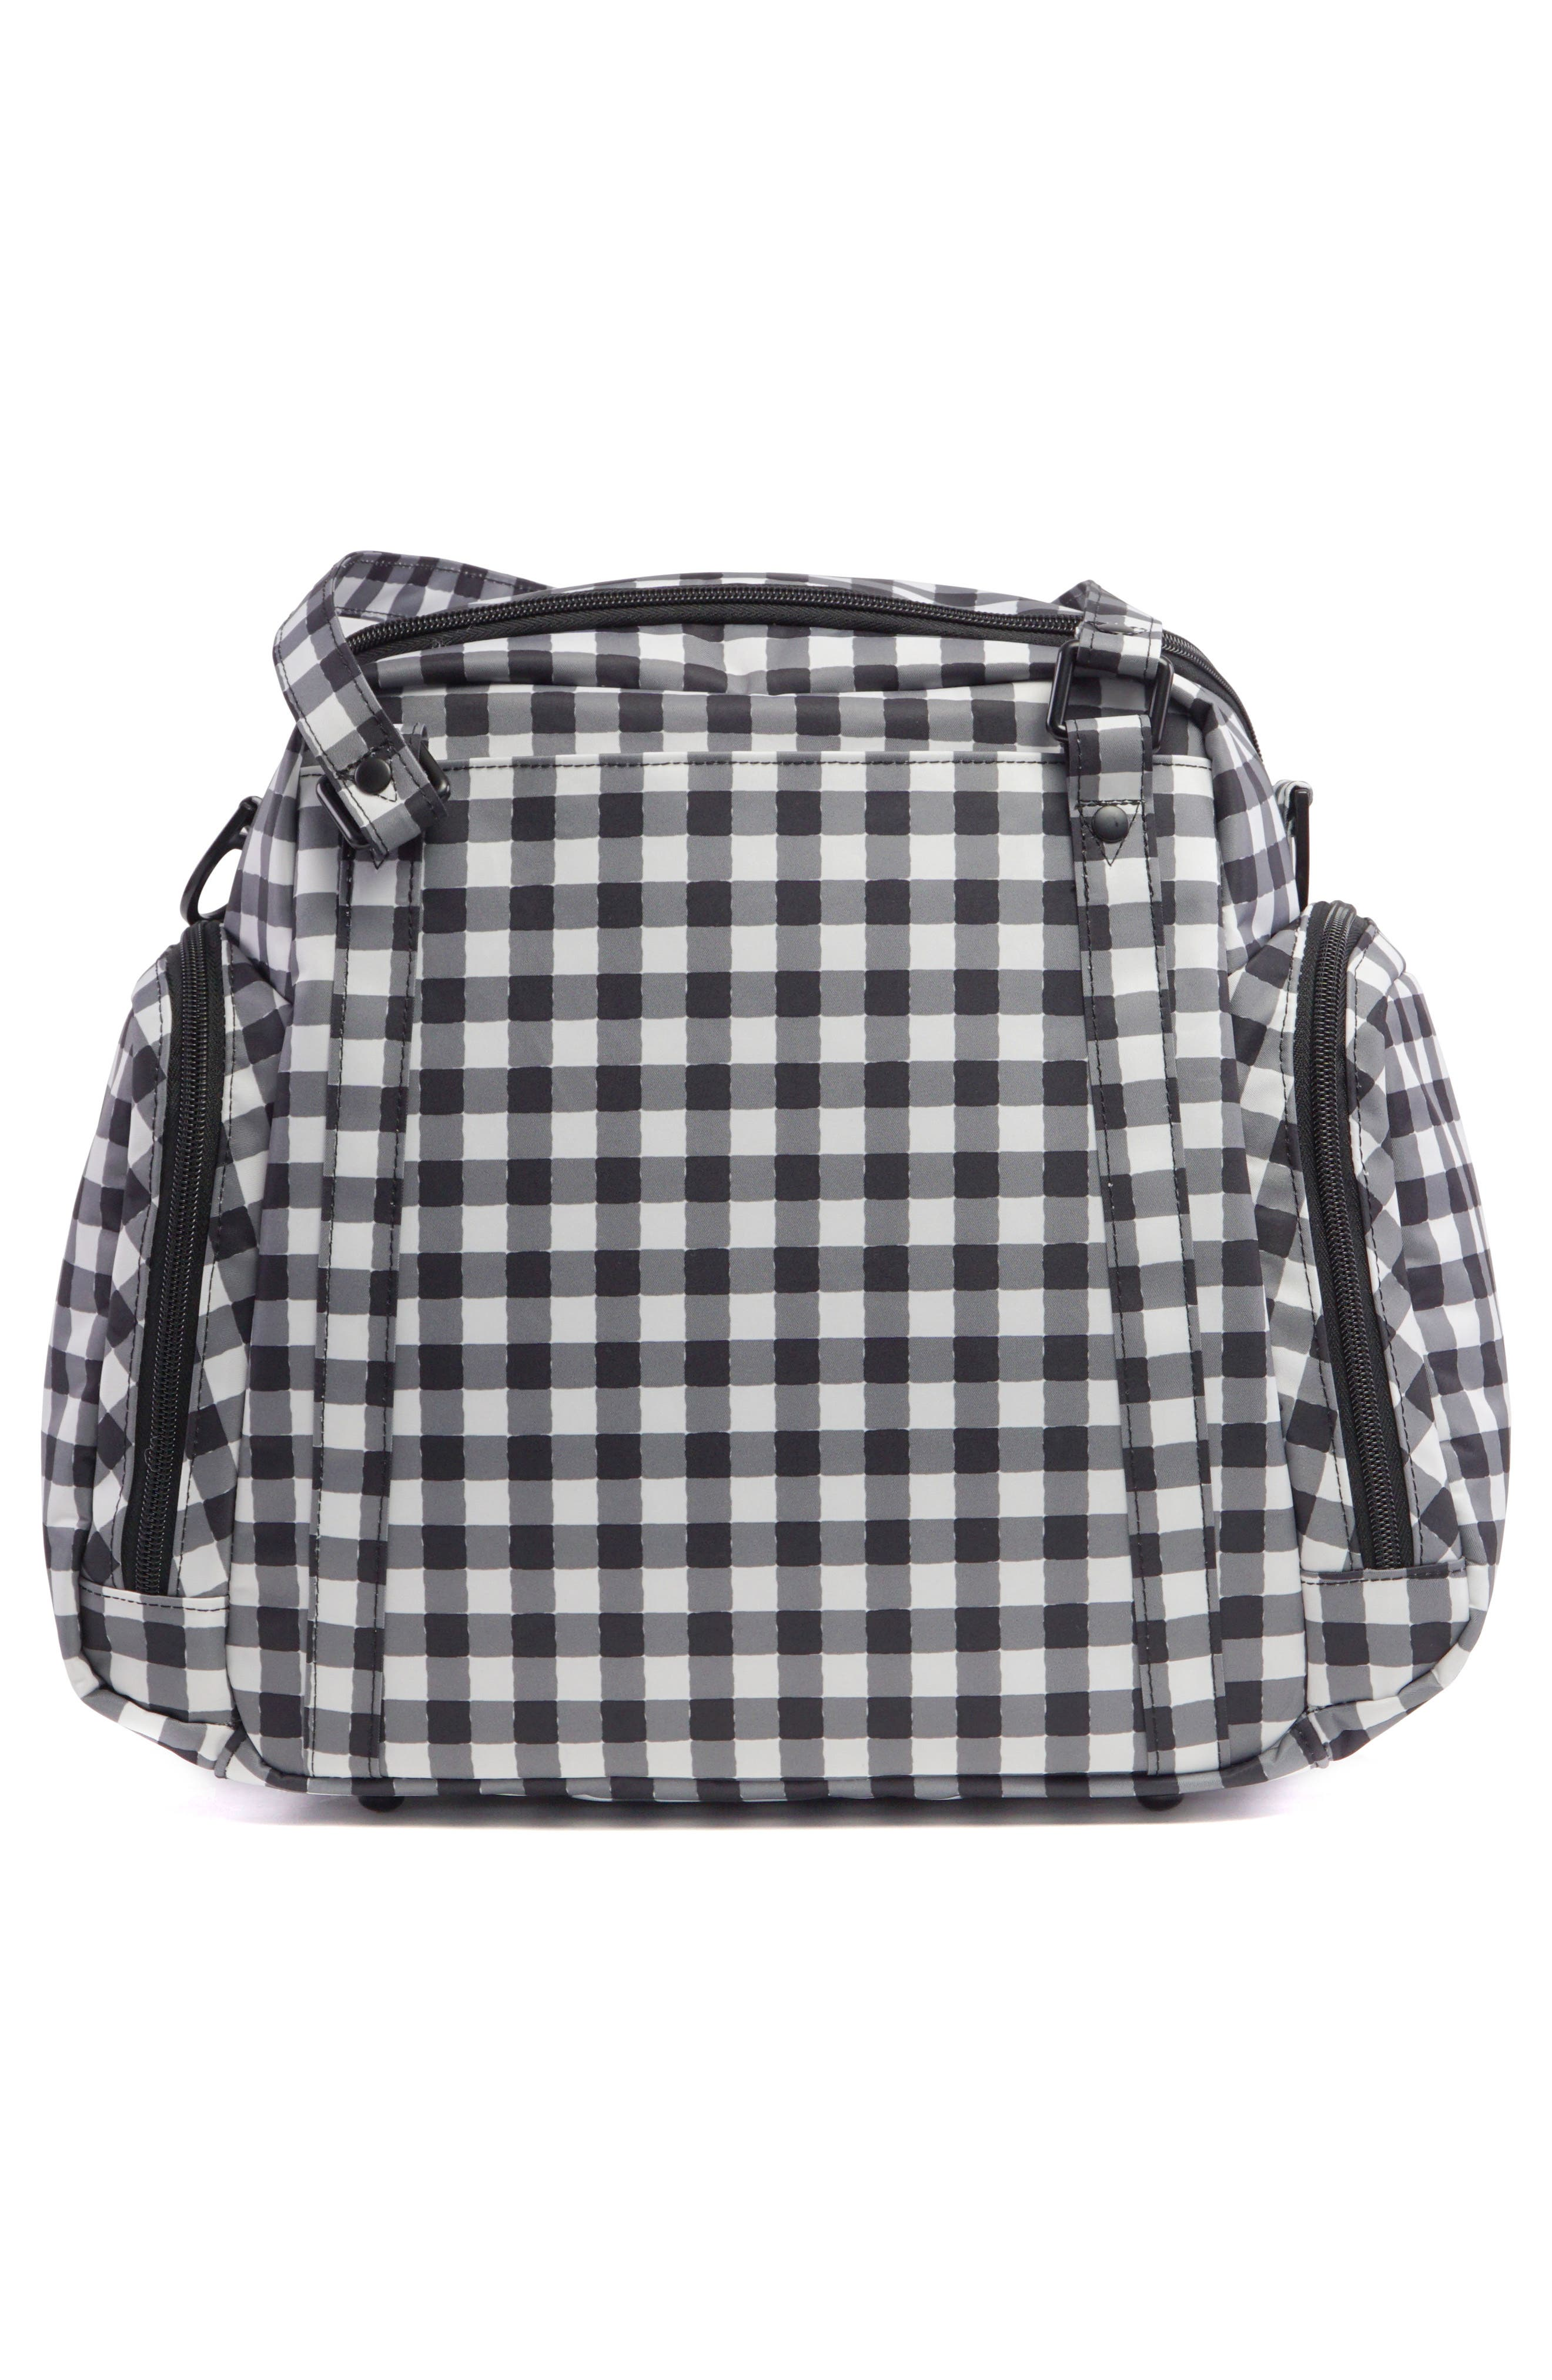 Onyx Be Supplied Pumping Bag,                             Alternate thumbnail 2, color,                             GINGHAM STYLE